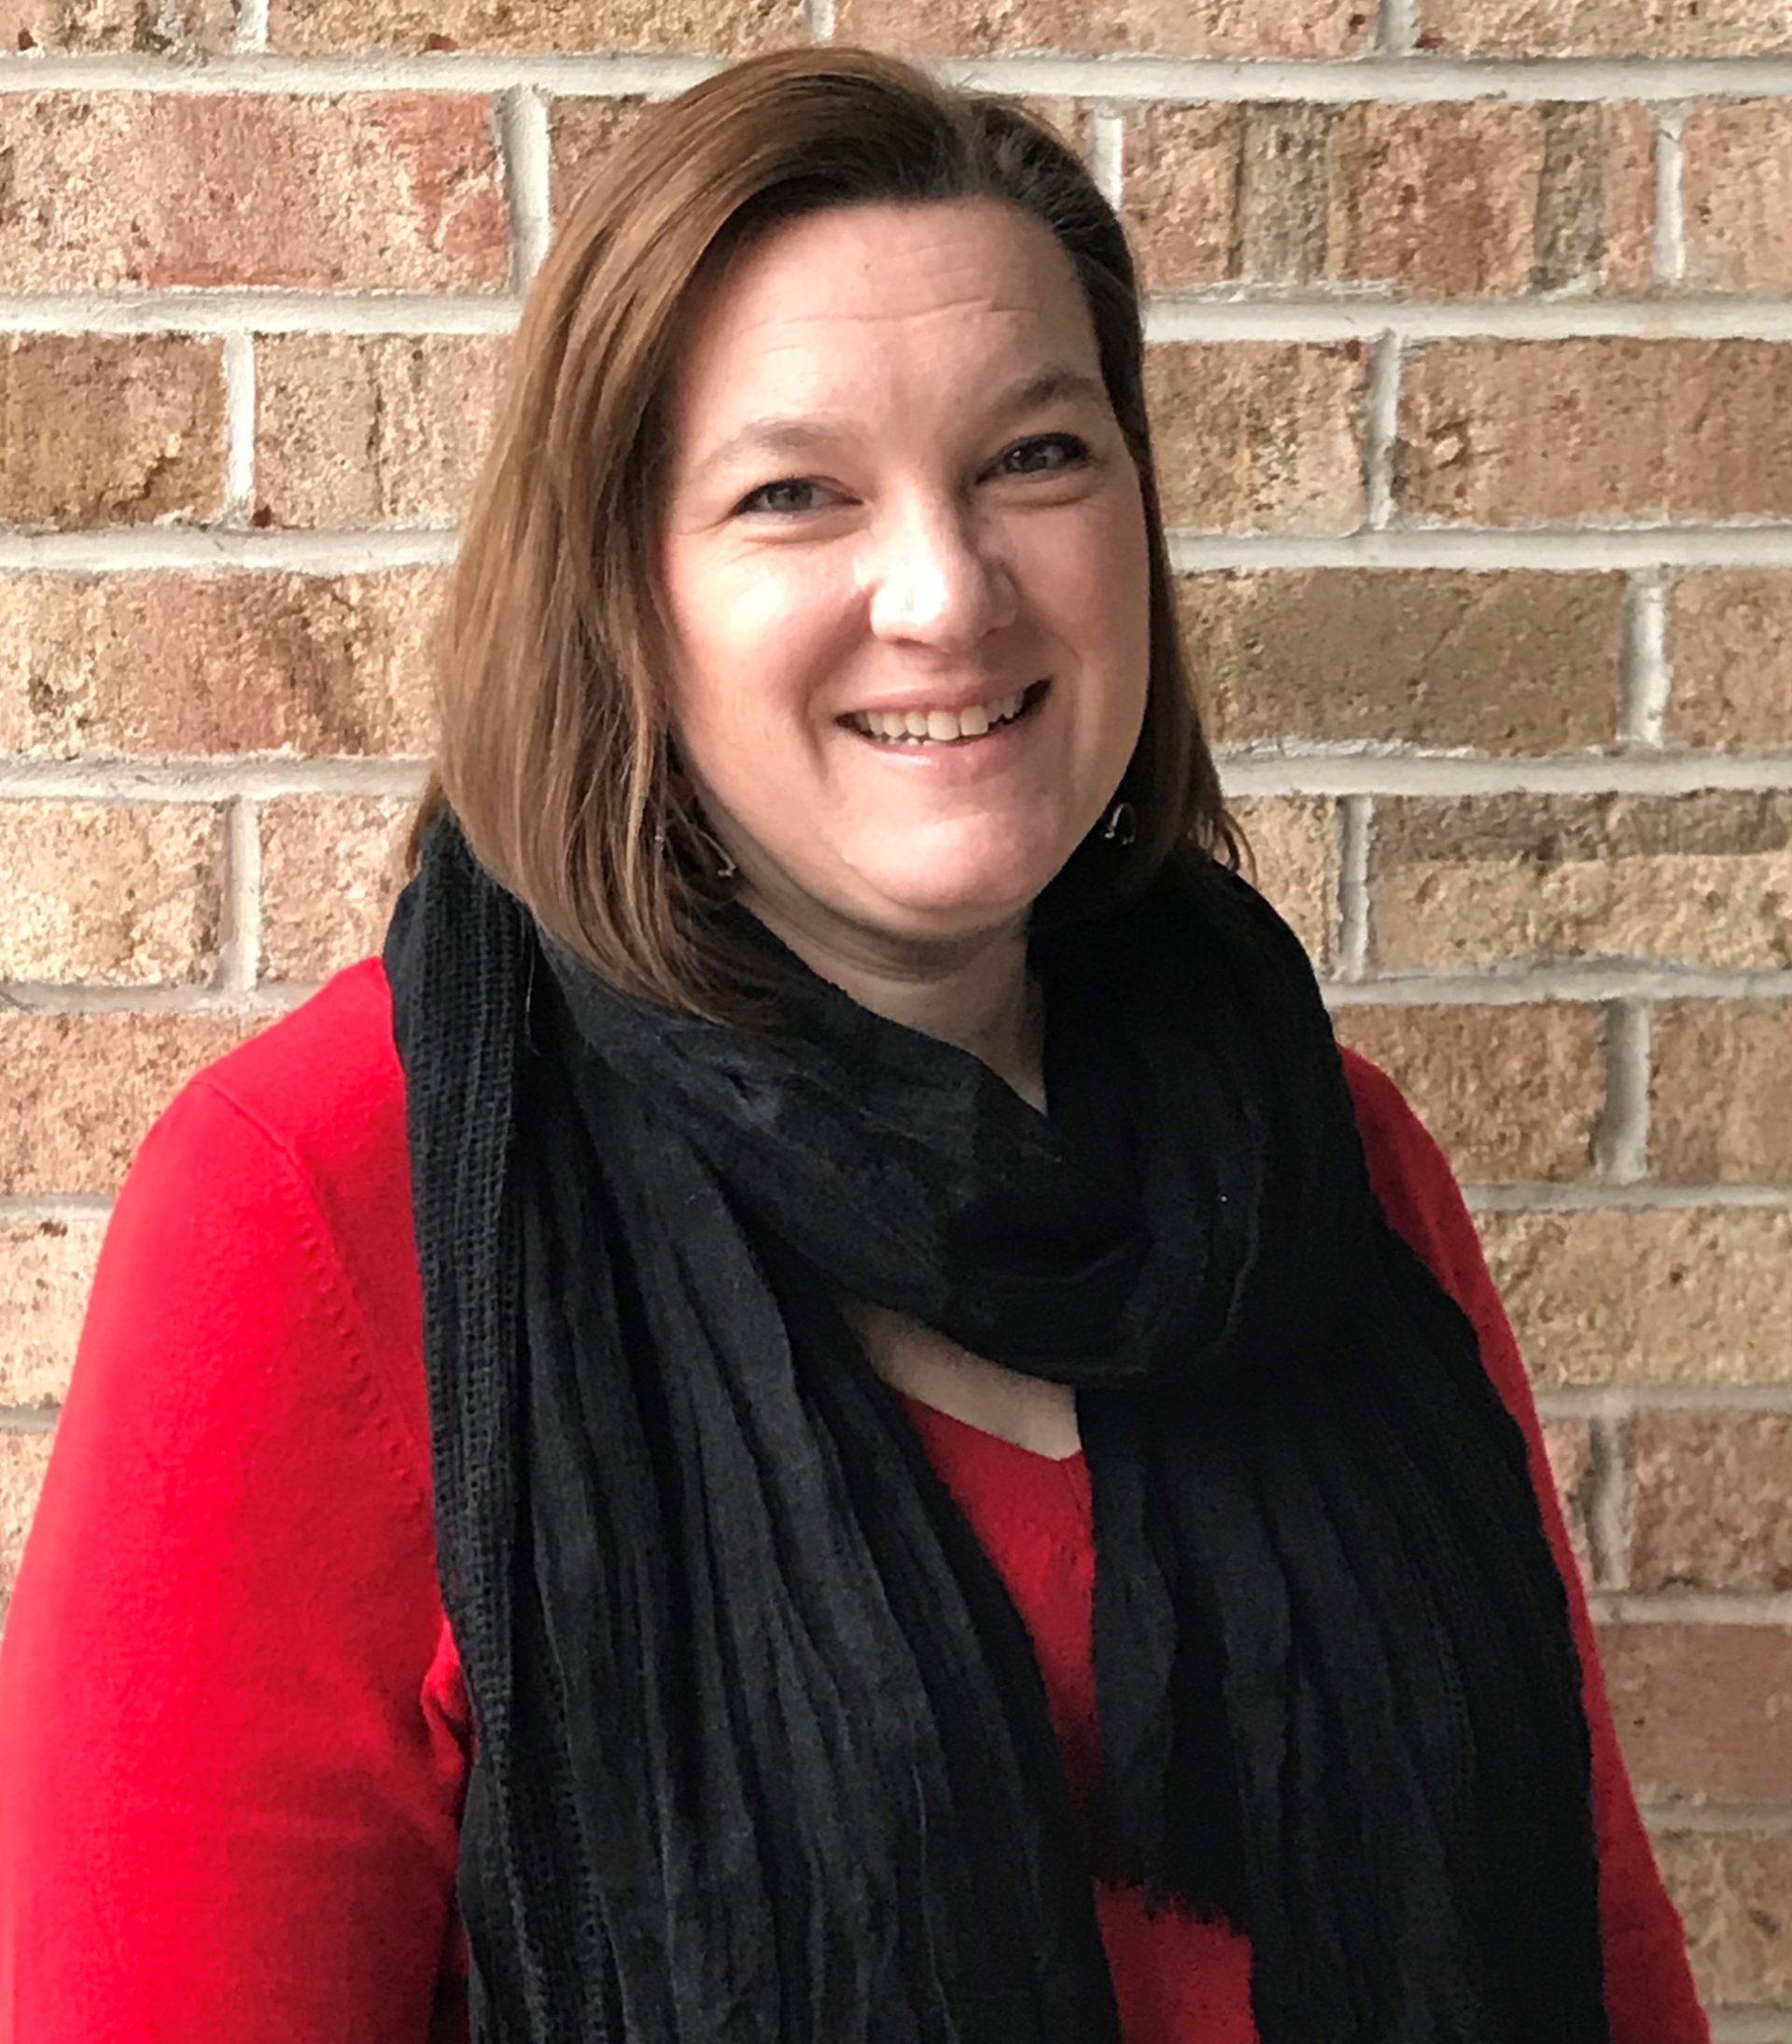 Hello! My name is Sheri Murdock and I am thrilled to be joining the team at Inspire! Crayon Campus. I can't wait to meet everyone and look forward to learning all about your children. My journey in the field of education has led me back home this fall. I grew up in Caledonia, spent 10 years in Buffalo, 18 years in Albany and now my family and I find ourselves coming full circle right back to Caledonia. I am married and have 2 children. My son Tommy is 13 and my daughter Ryann is 11. (I don't think my husband Bill would appreciate me telling his age) One of our favorite things to do is to go camping in the summer. We usually go to Moreau Lake which is between Saratoga Springs and Lake George. Now we have a mission to find a new favorite spot in this area. It's very exciting to think about! I started my career in education as a Spanish teacher and taught Spanish for 12 years. I decided to move into early childhood education after my son was born and have been involved in the field for 10 years, most of which are in the administrative role. I want to get to know each and every one of you. I want to hear your stories. I want to hear your hopes and dreams for the center. I love what I do and I intend to show that to you.